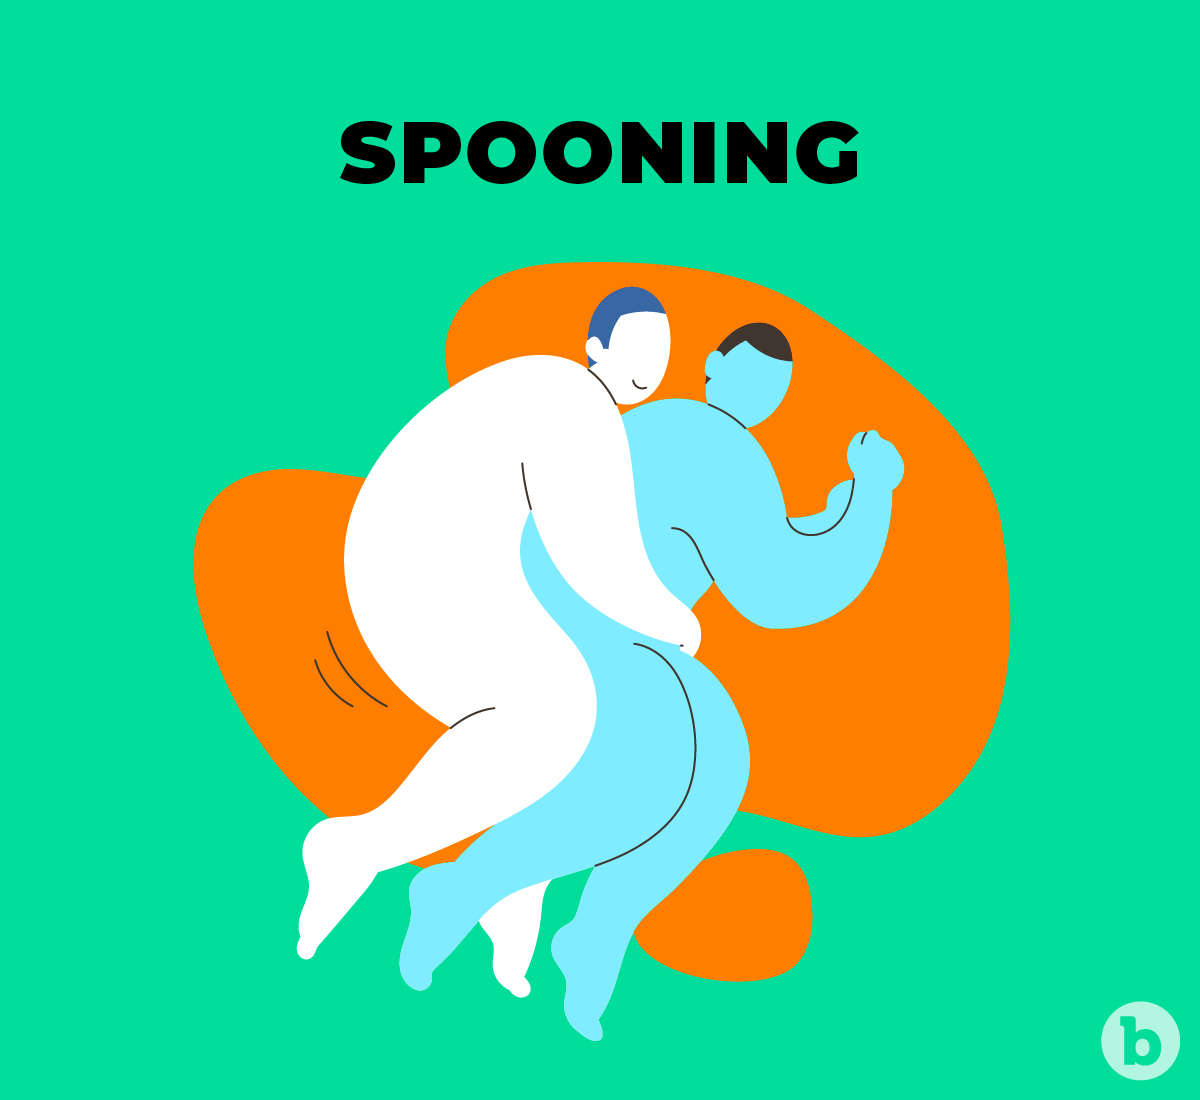 Spooning is one of the most comfortable positions when it comes to pegging